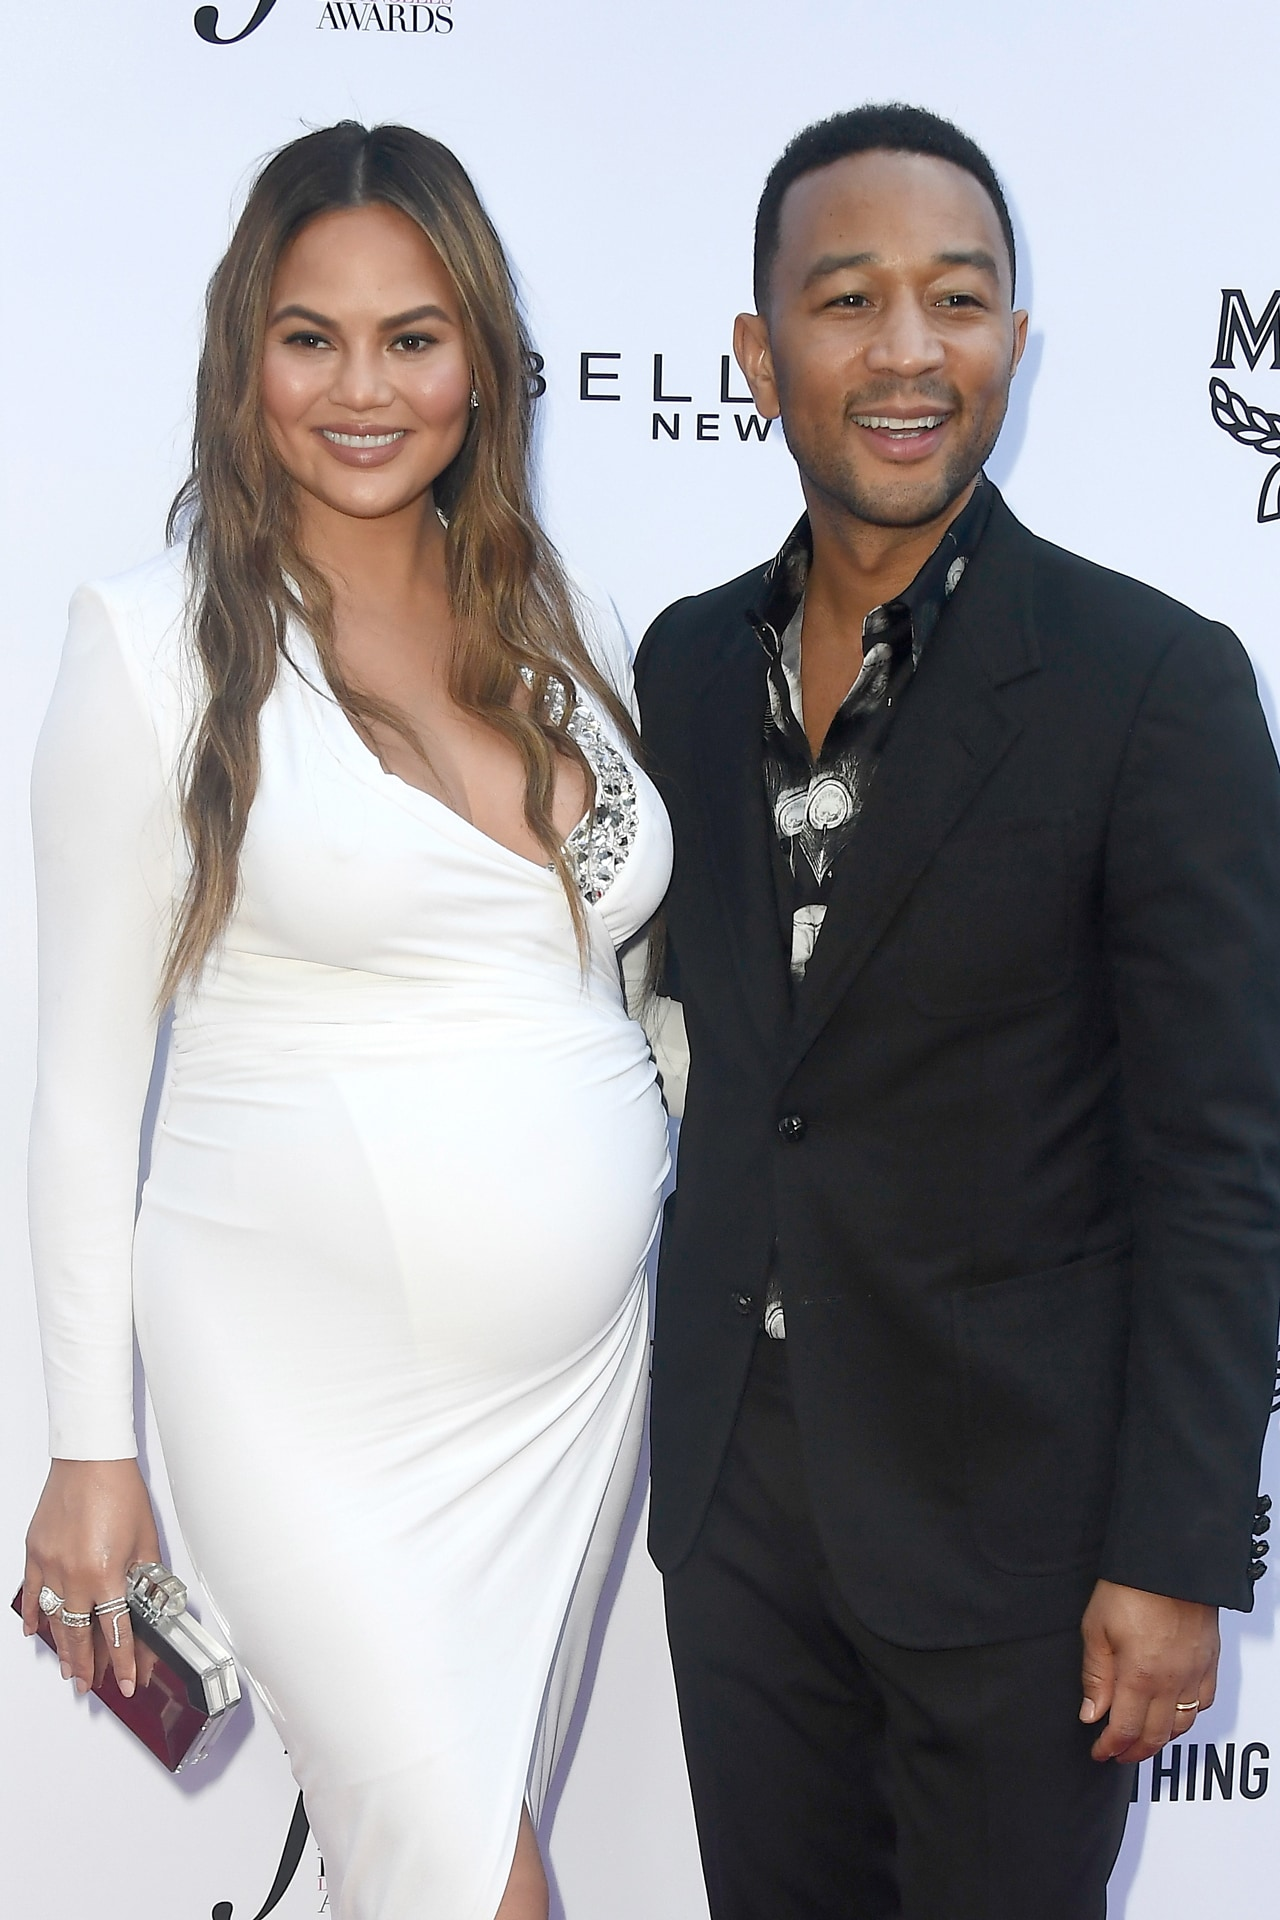 Chrissy Teigen and John Legend just revealed the first photo and name of their son